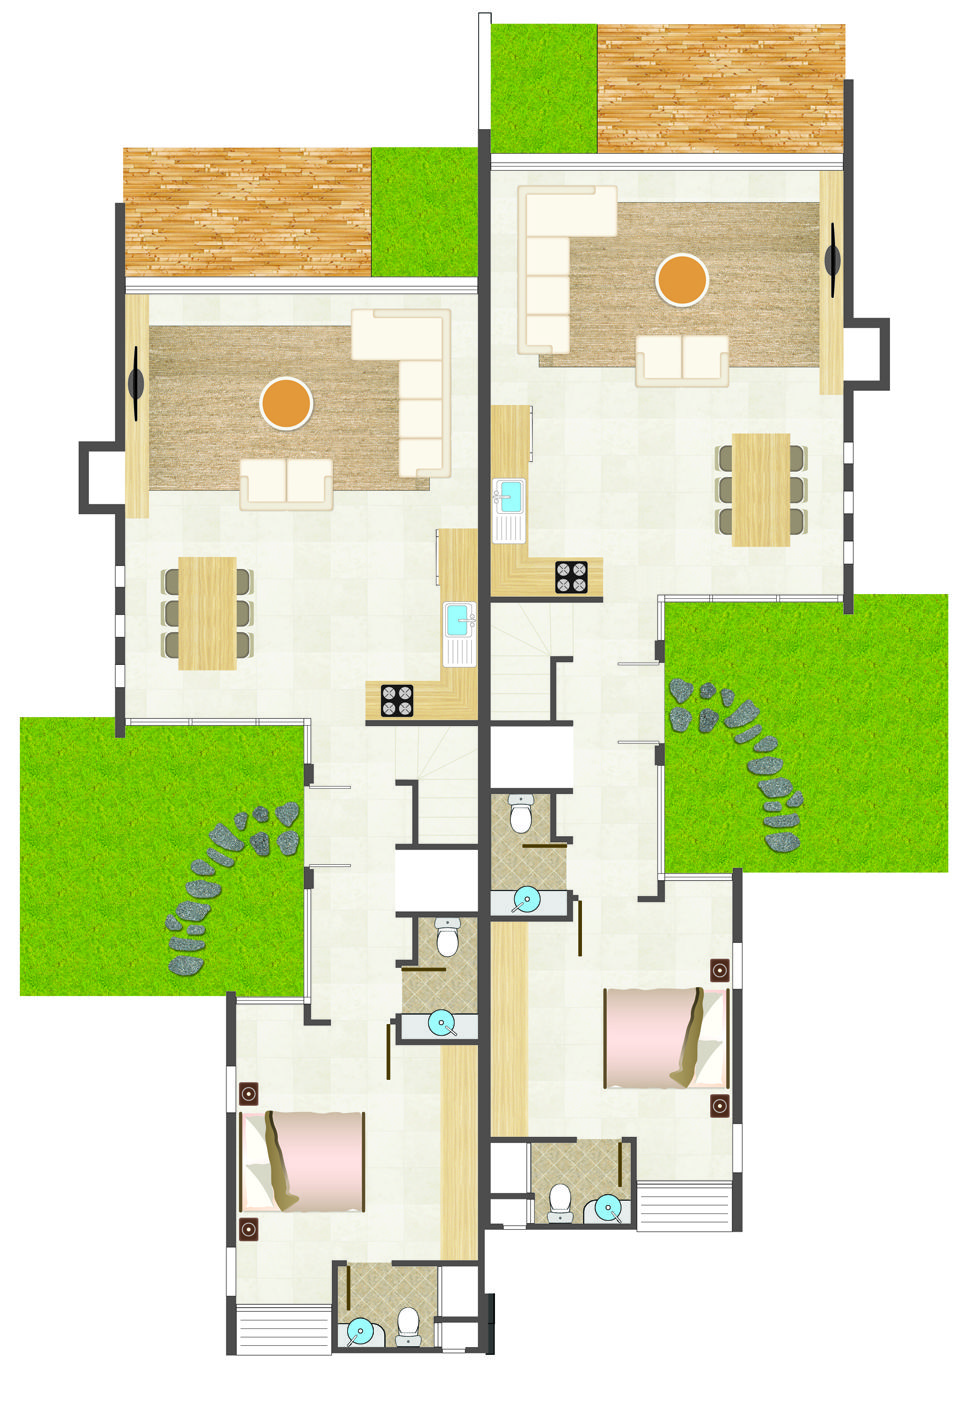 Floor Plans In A Different Style To Soften The Look Floor Plans Property Marketing Bed And Breakfast